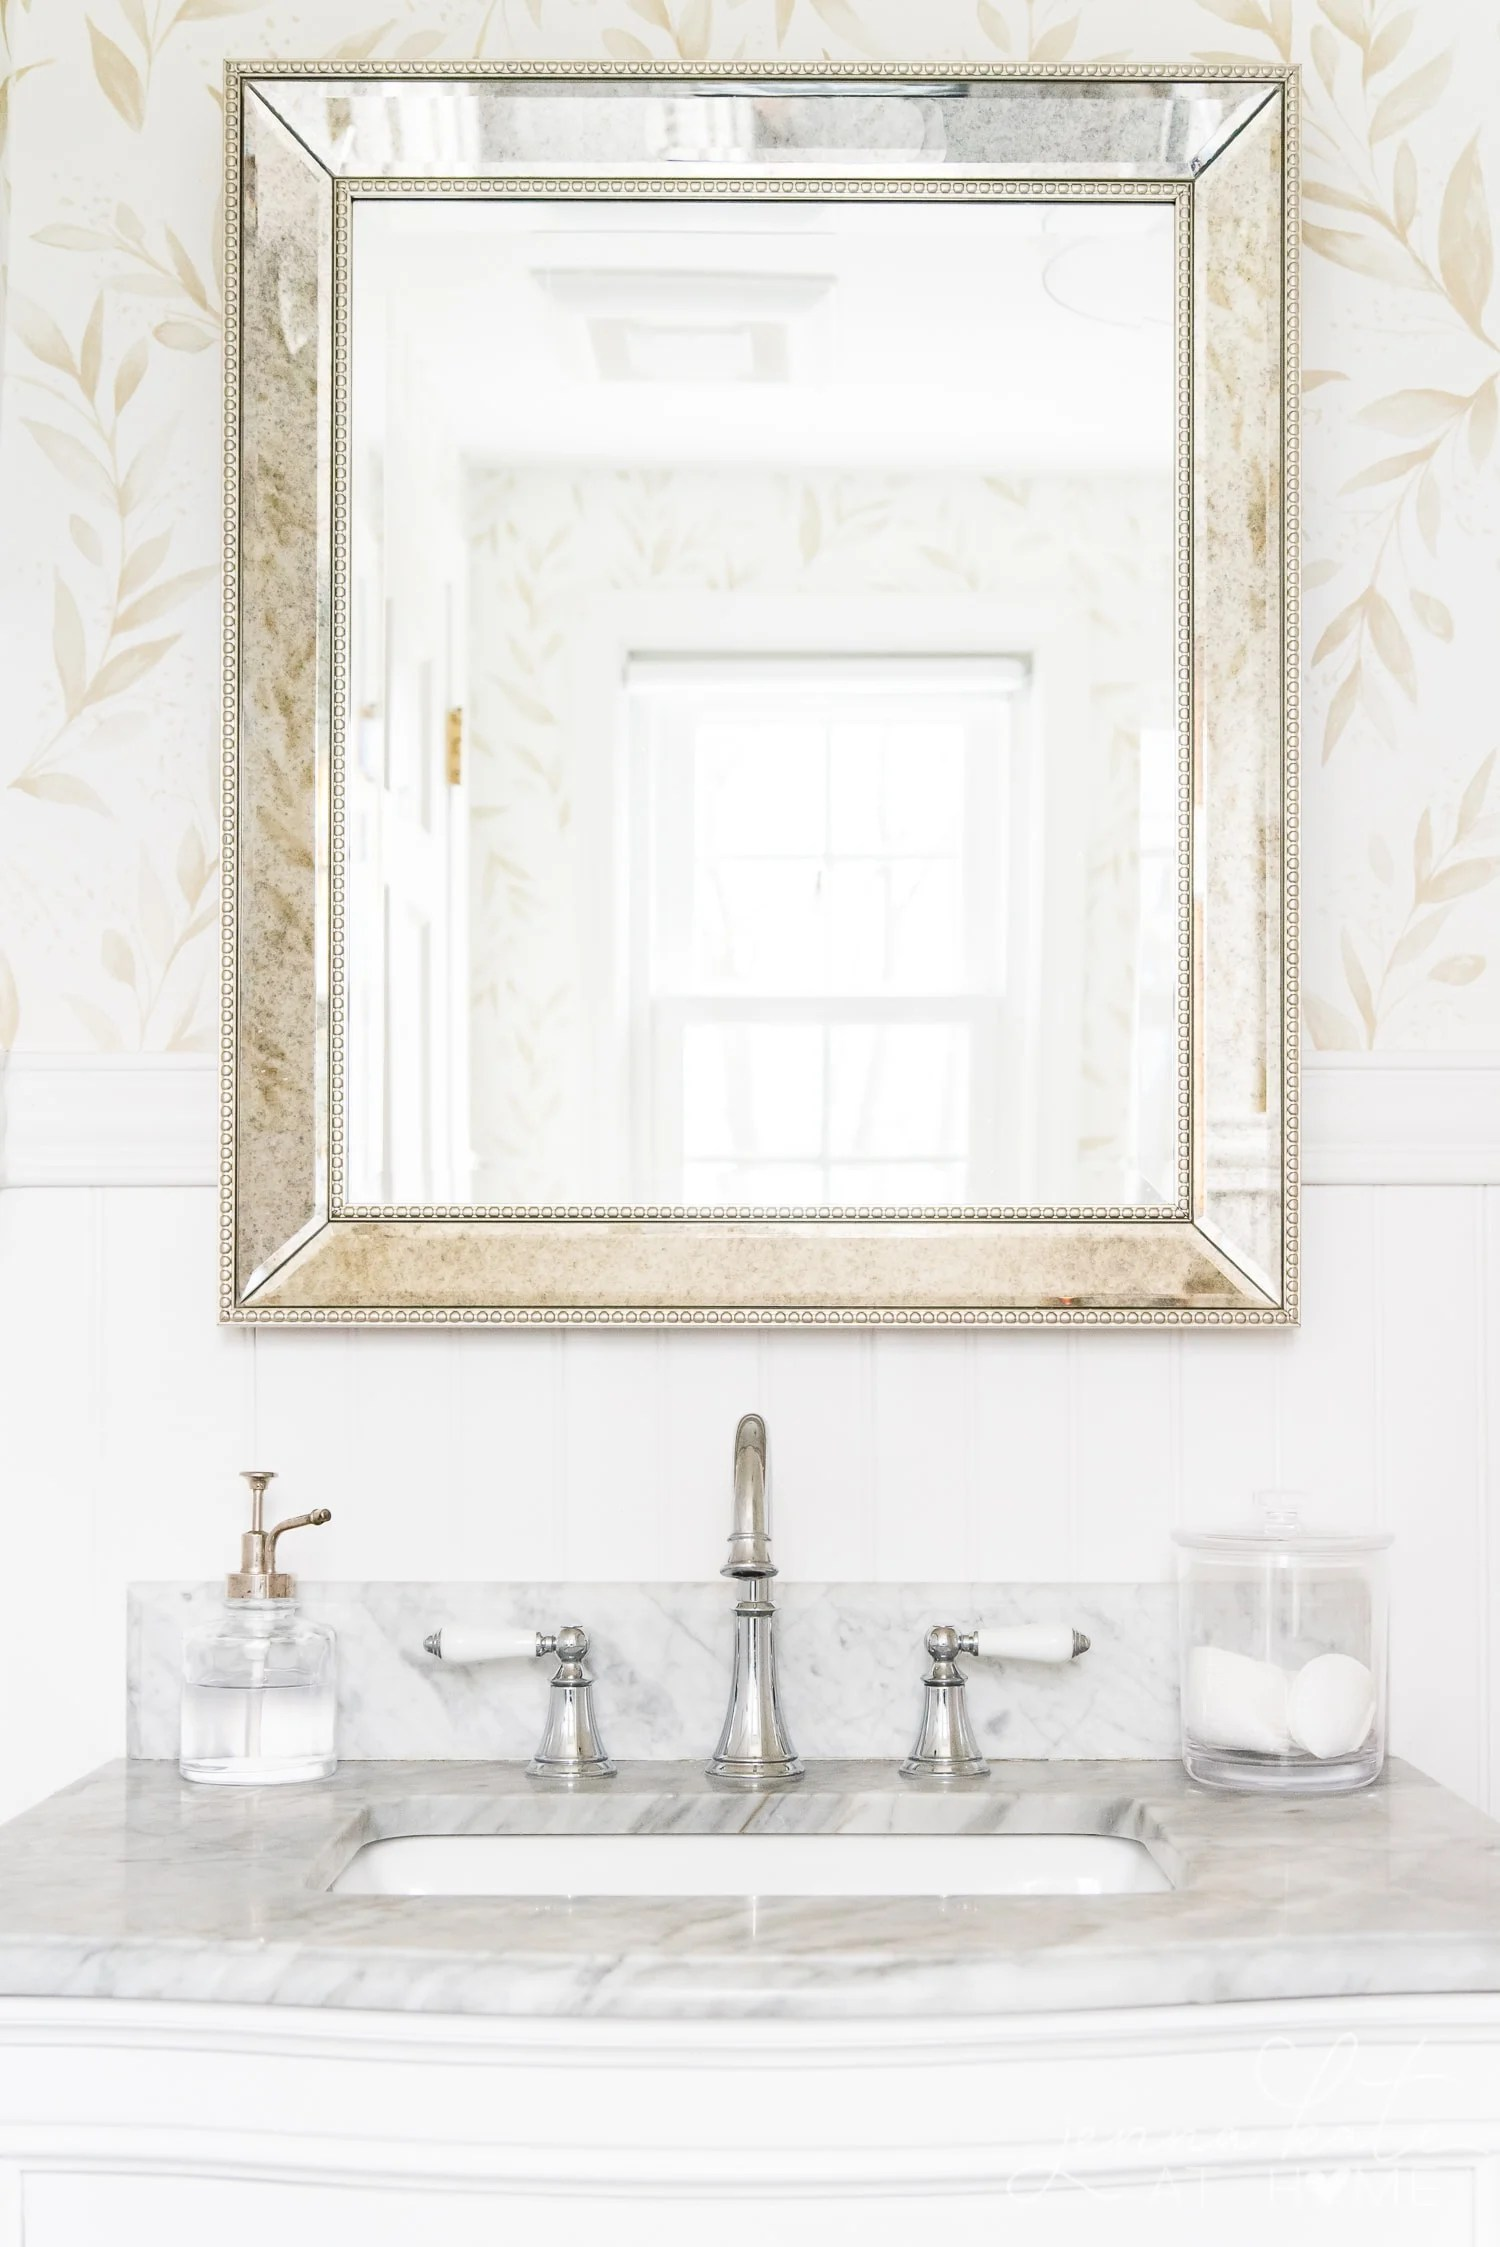 Large mirror over vanity in the bathroom